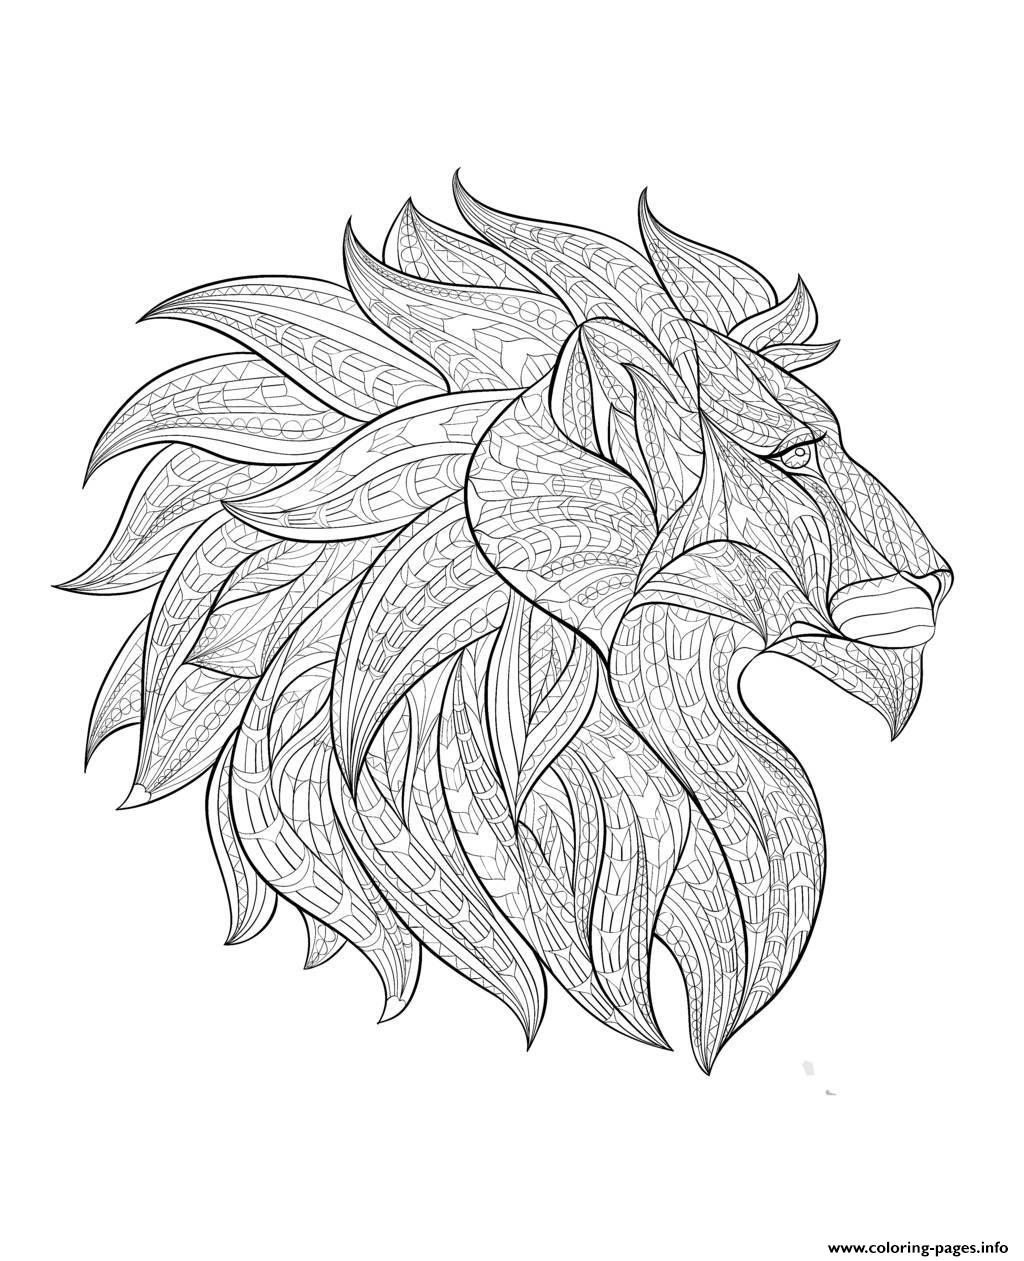 Lion Coloring Page Free Coloring Pages Download | Xsibe monkey ...